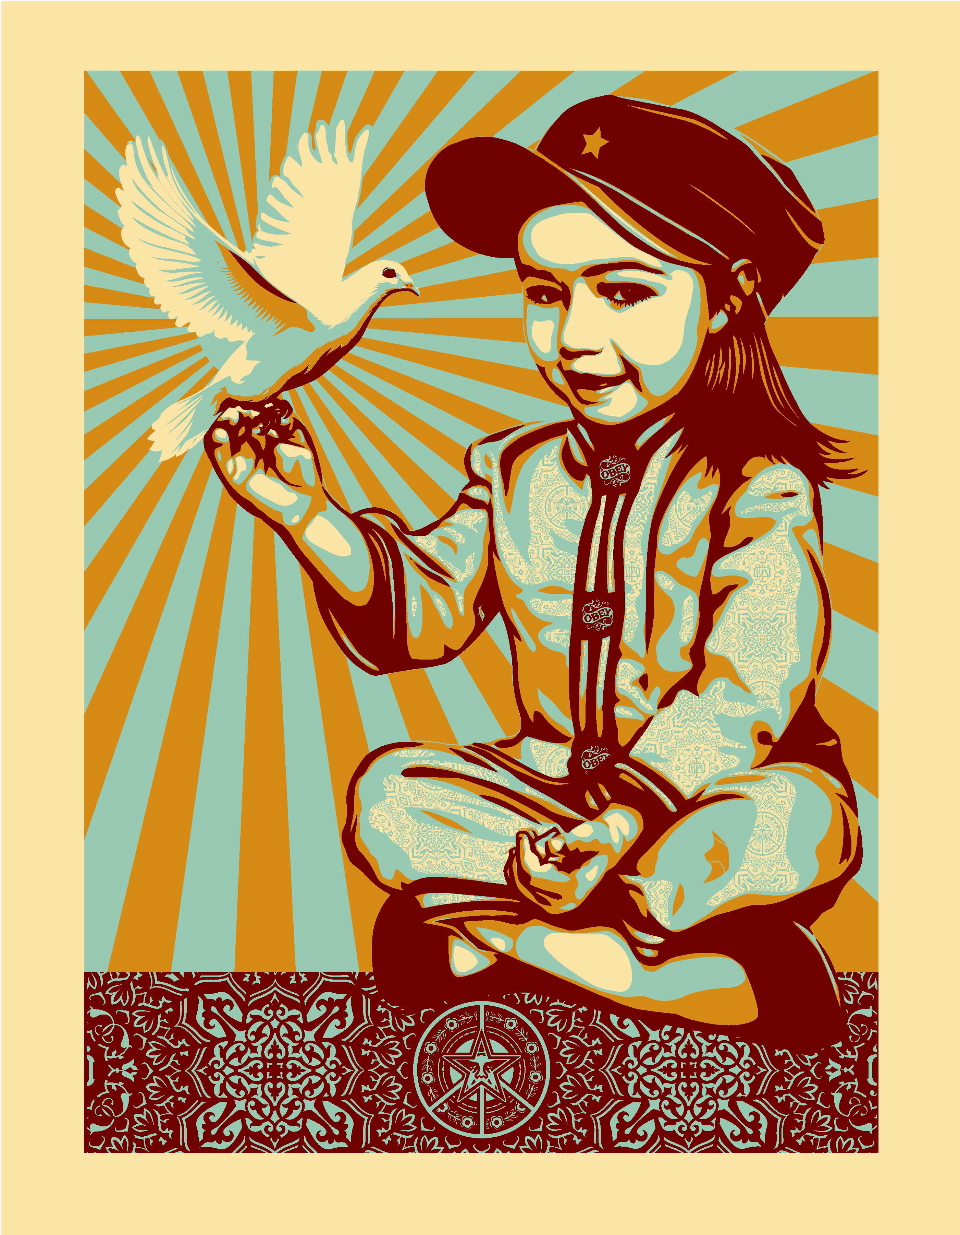 Poster Child Prints Poster Child Prints X Obey X Peace Series Prints Obey Giant